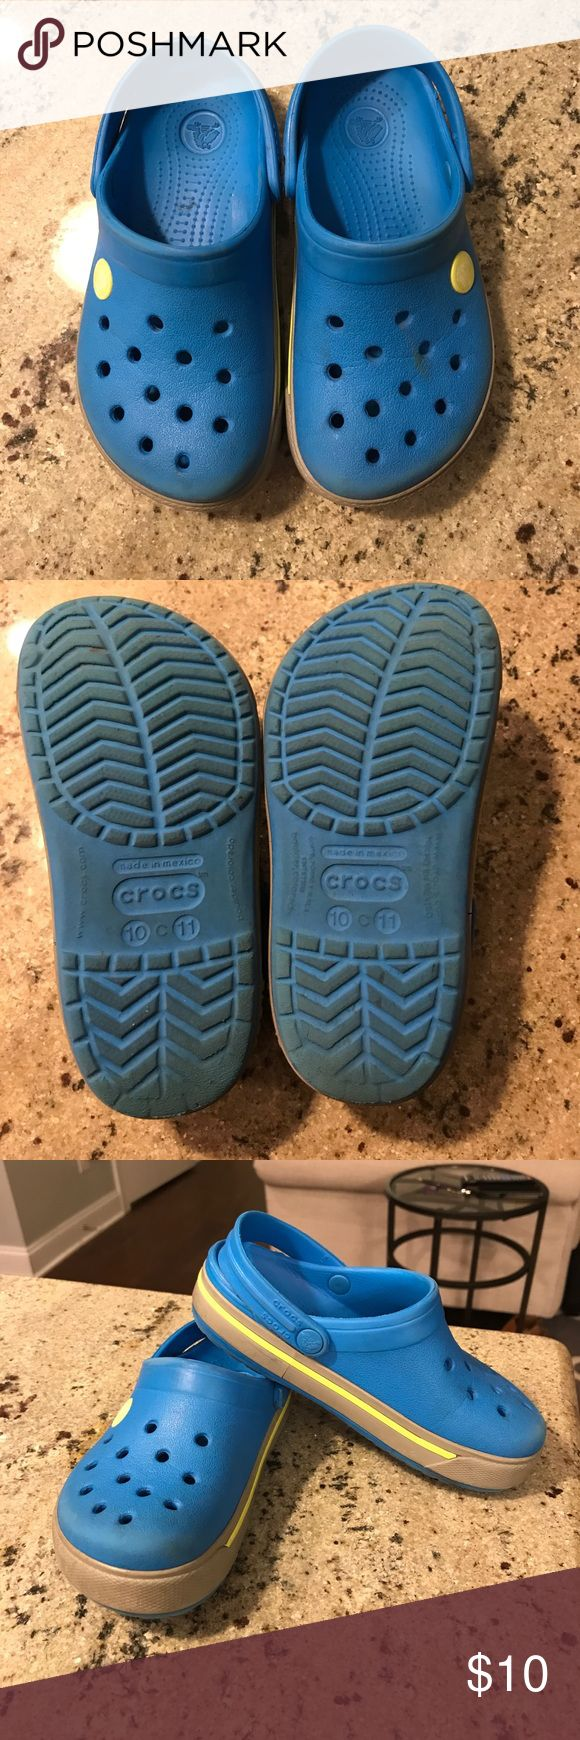 Crocs Bright blue crocs with a grey and lime green striped sole. These are the perfect fit for your little one who likes getting dirty. They wash right off and can be thrown in the washer any time. They have the strap that can be worn on heel for security or flipped up for ease of slipping on and off. Size C 10/11 CROCS Shoes Sandals & Flip Flops